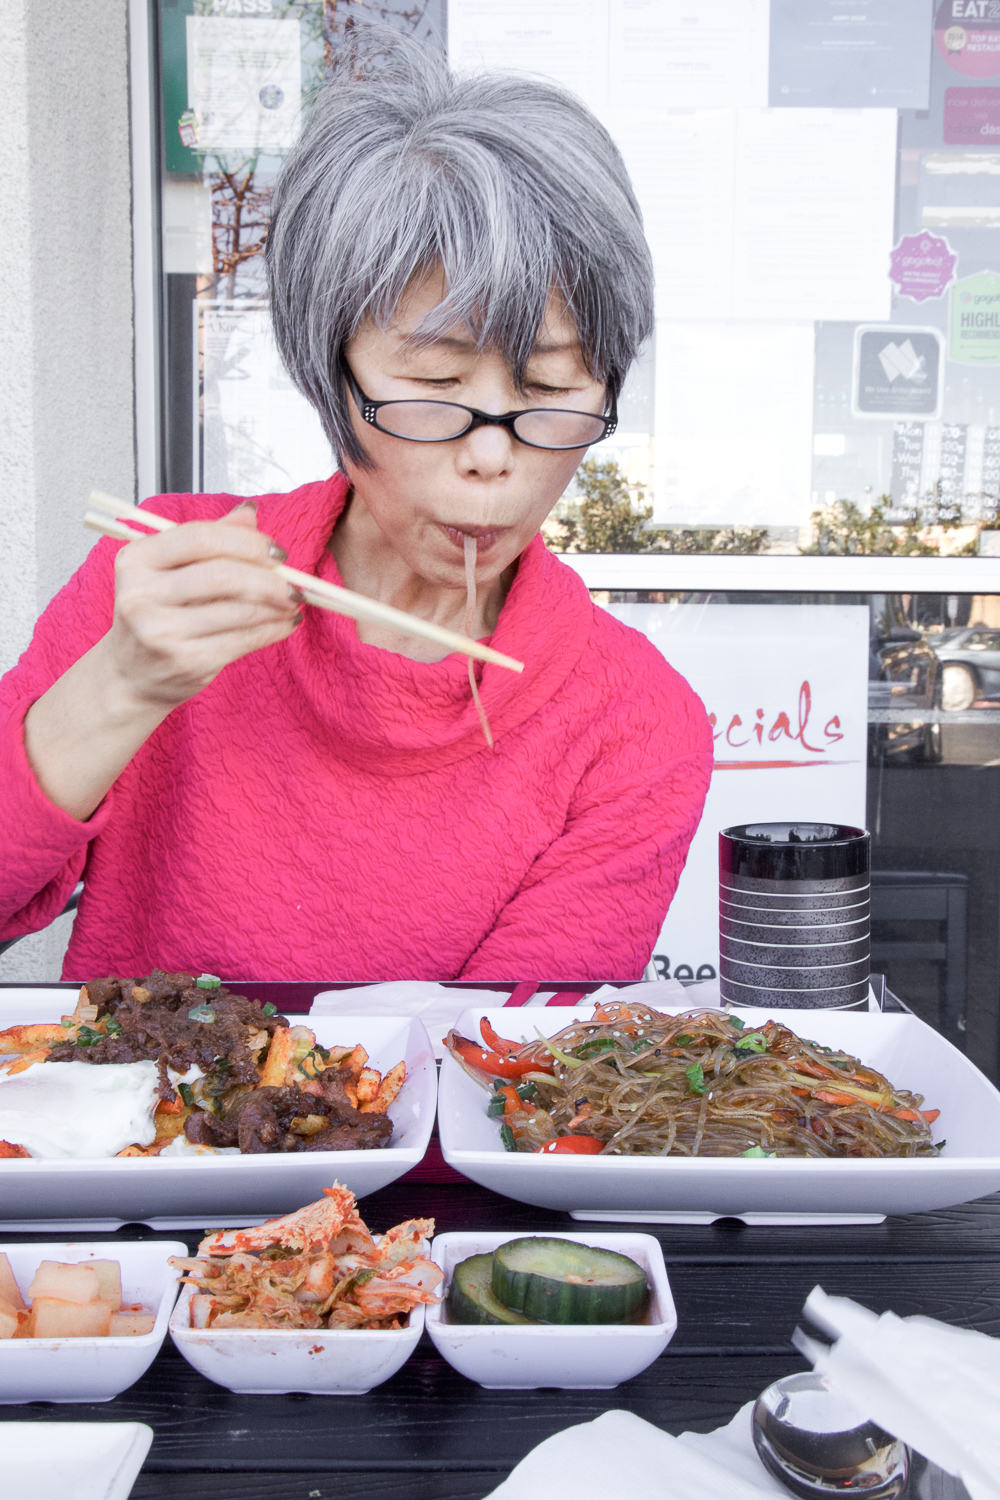 Slurpin' those Japchae noodles!